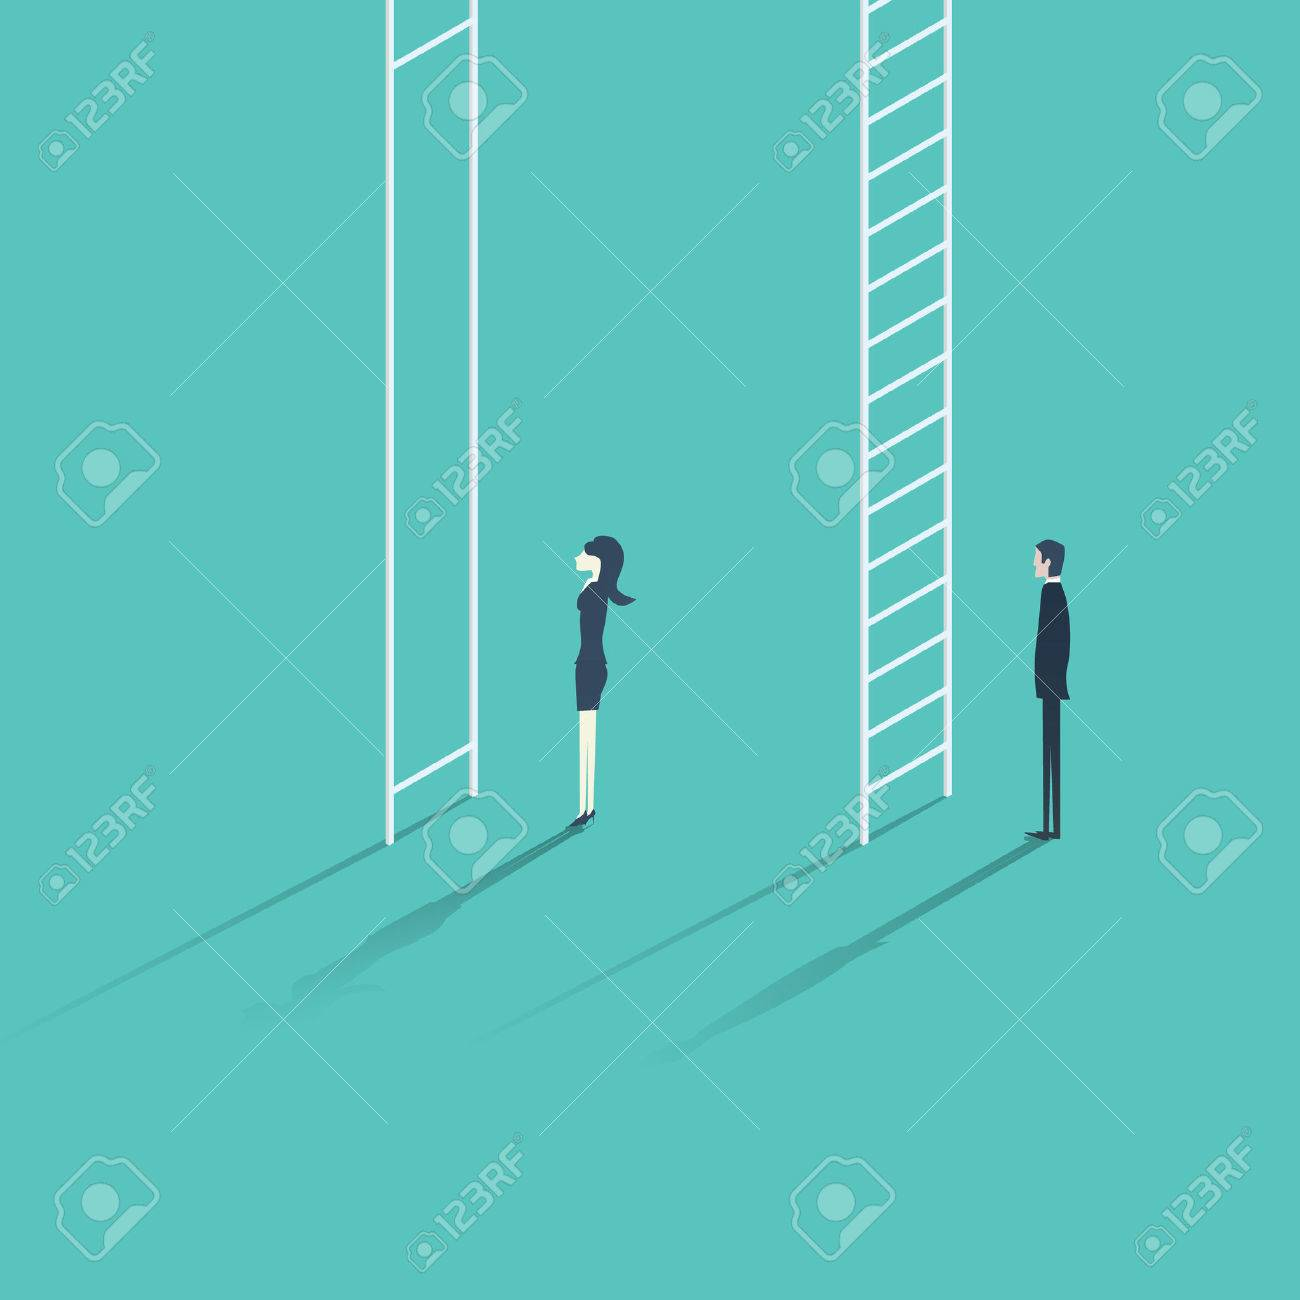 Business woman versus man corporate ladder career concept illustration. Gender inequality issue with different opportunities for males and females. - 57017829